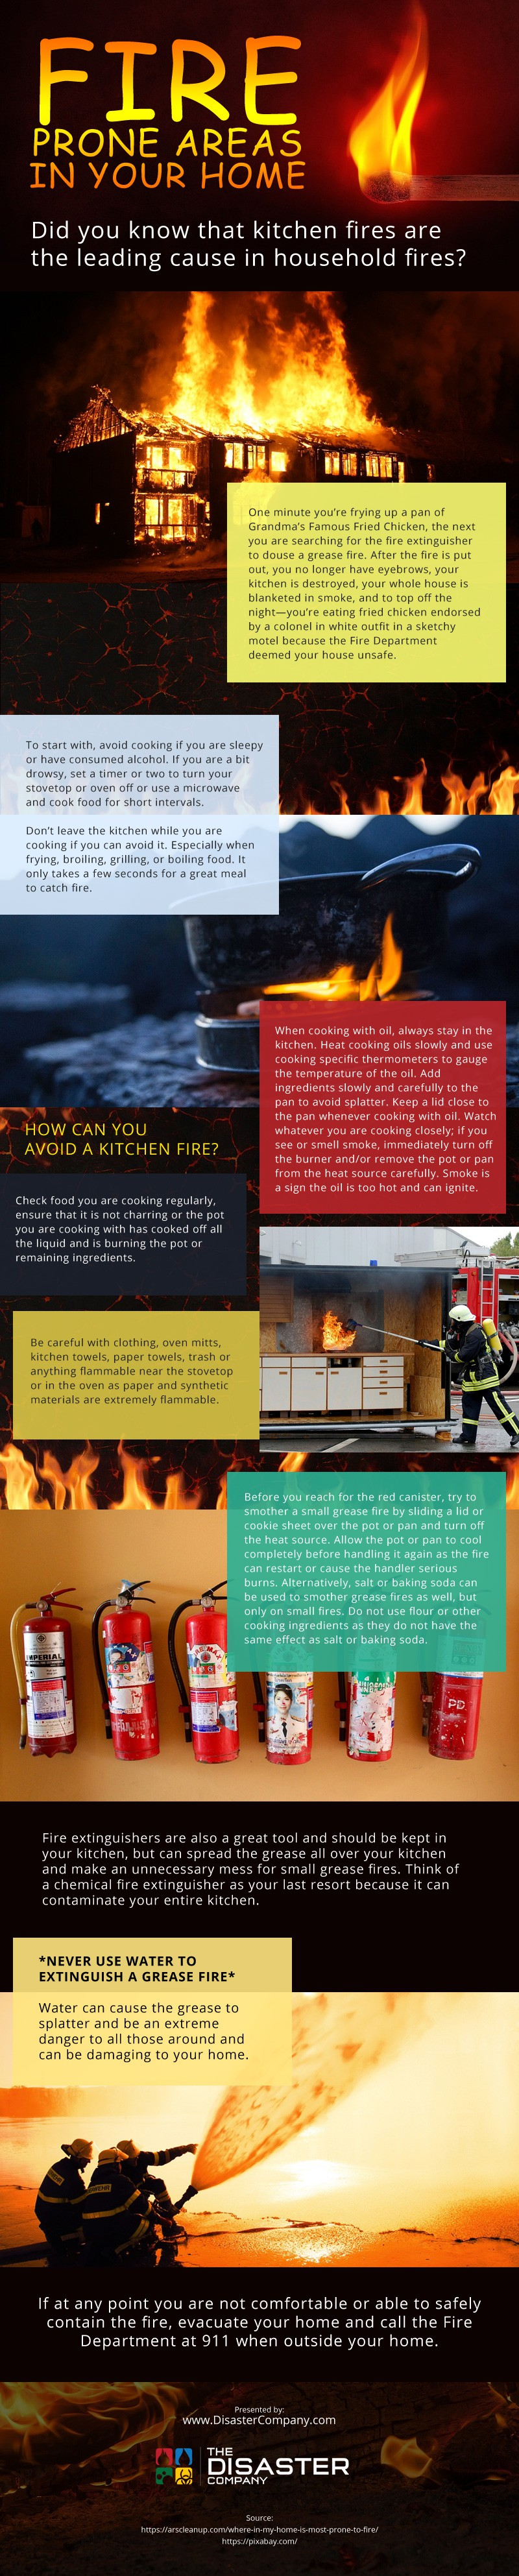 Fire Prone Areas in your Home [infographic]